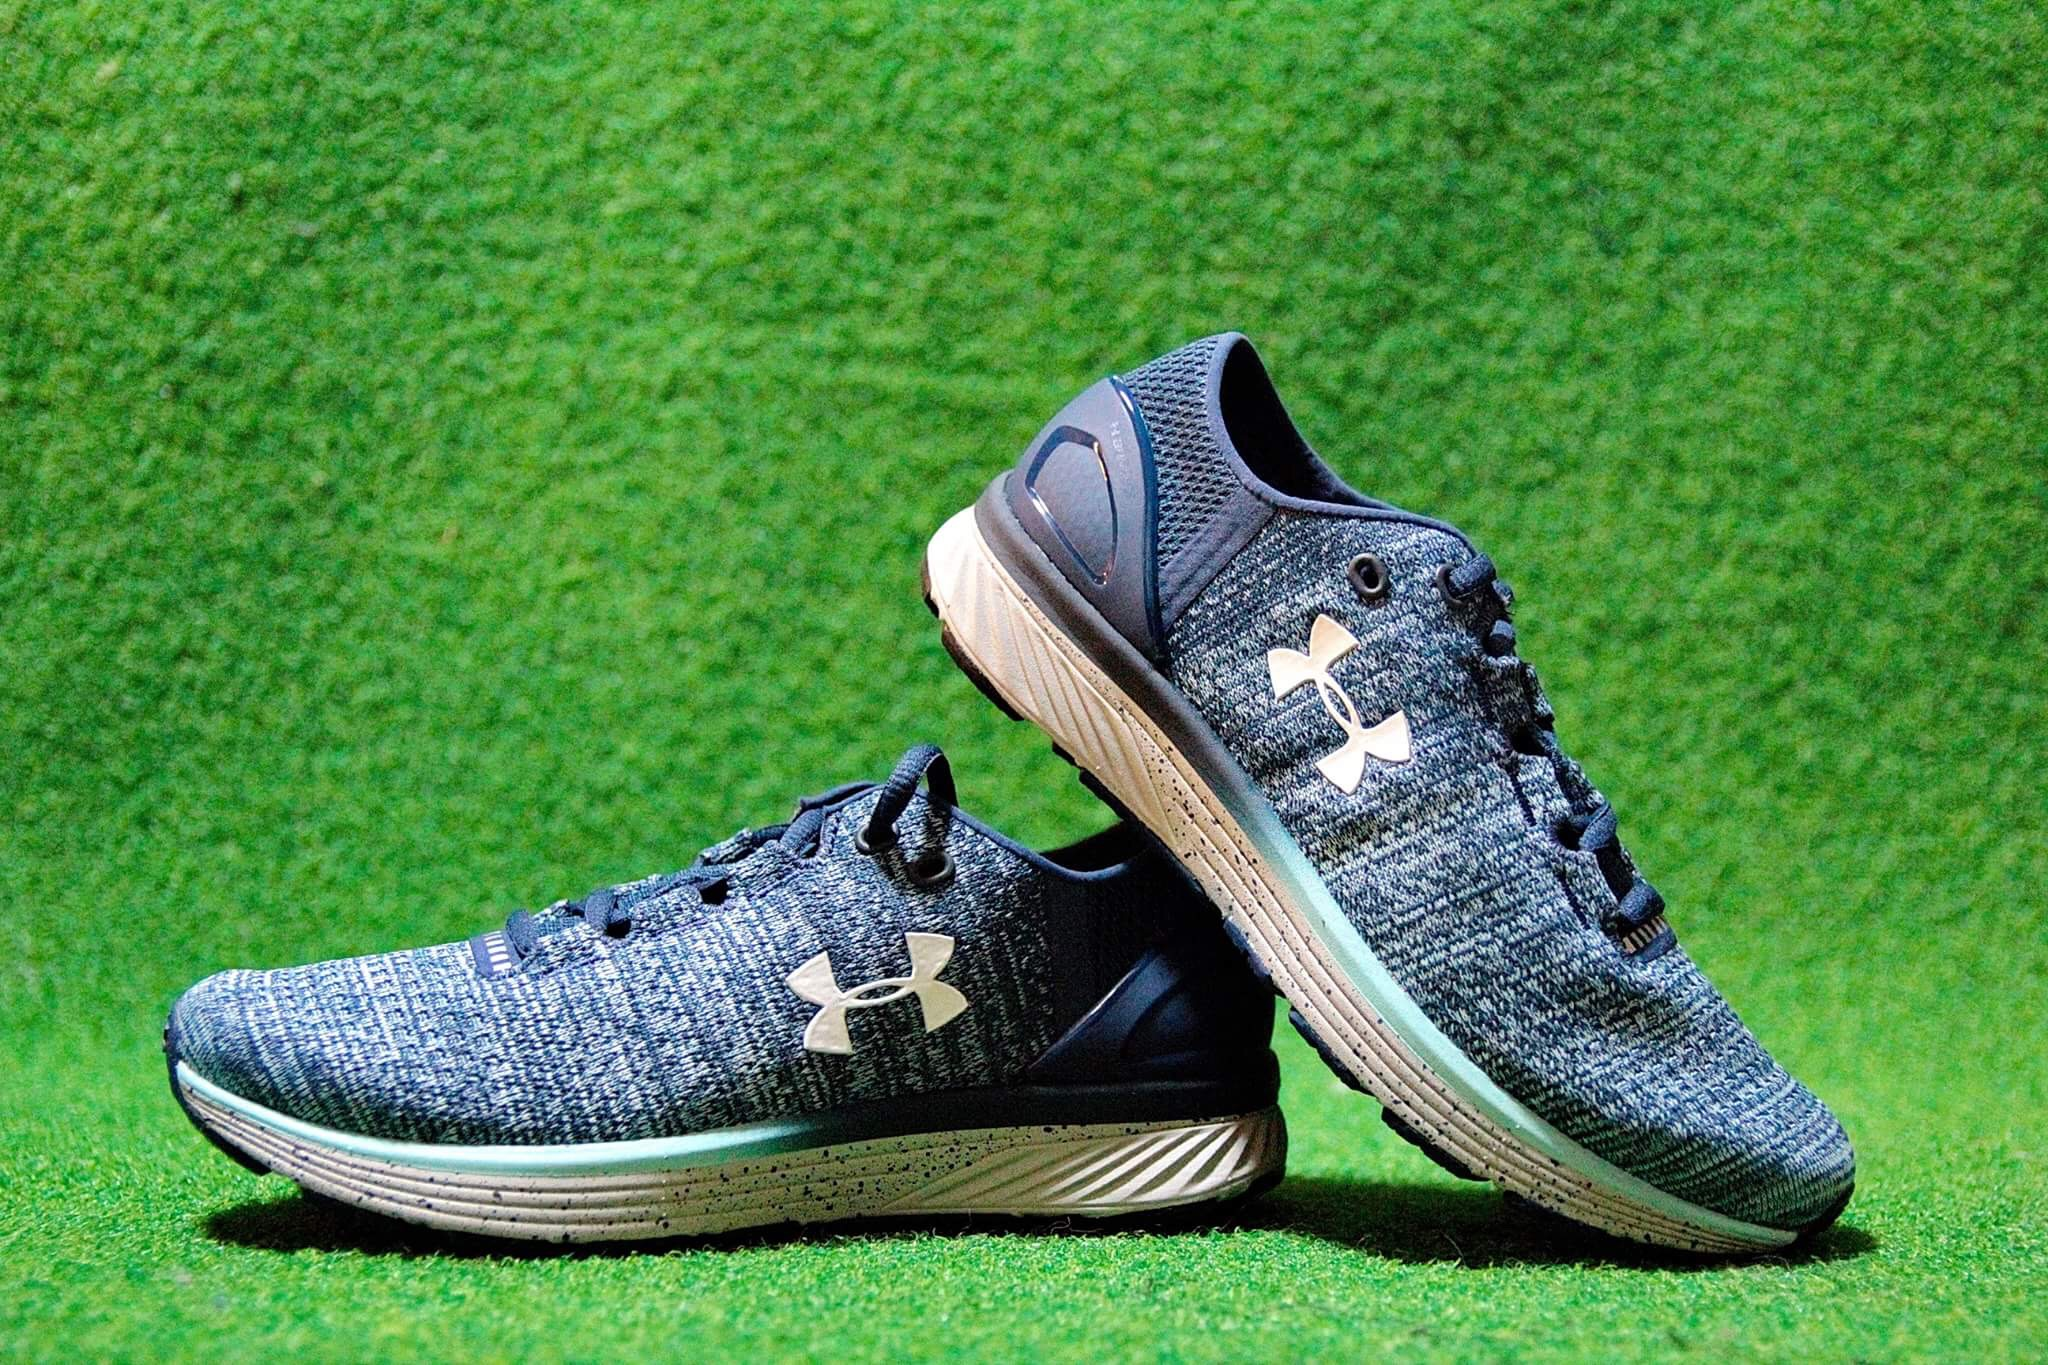 premium selection caf01 929a6 Under Armour's Charged BANDIT 3 – My Initial Impression ...